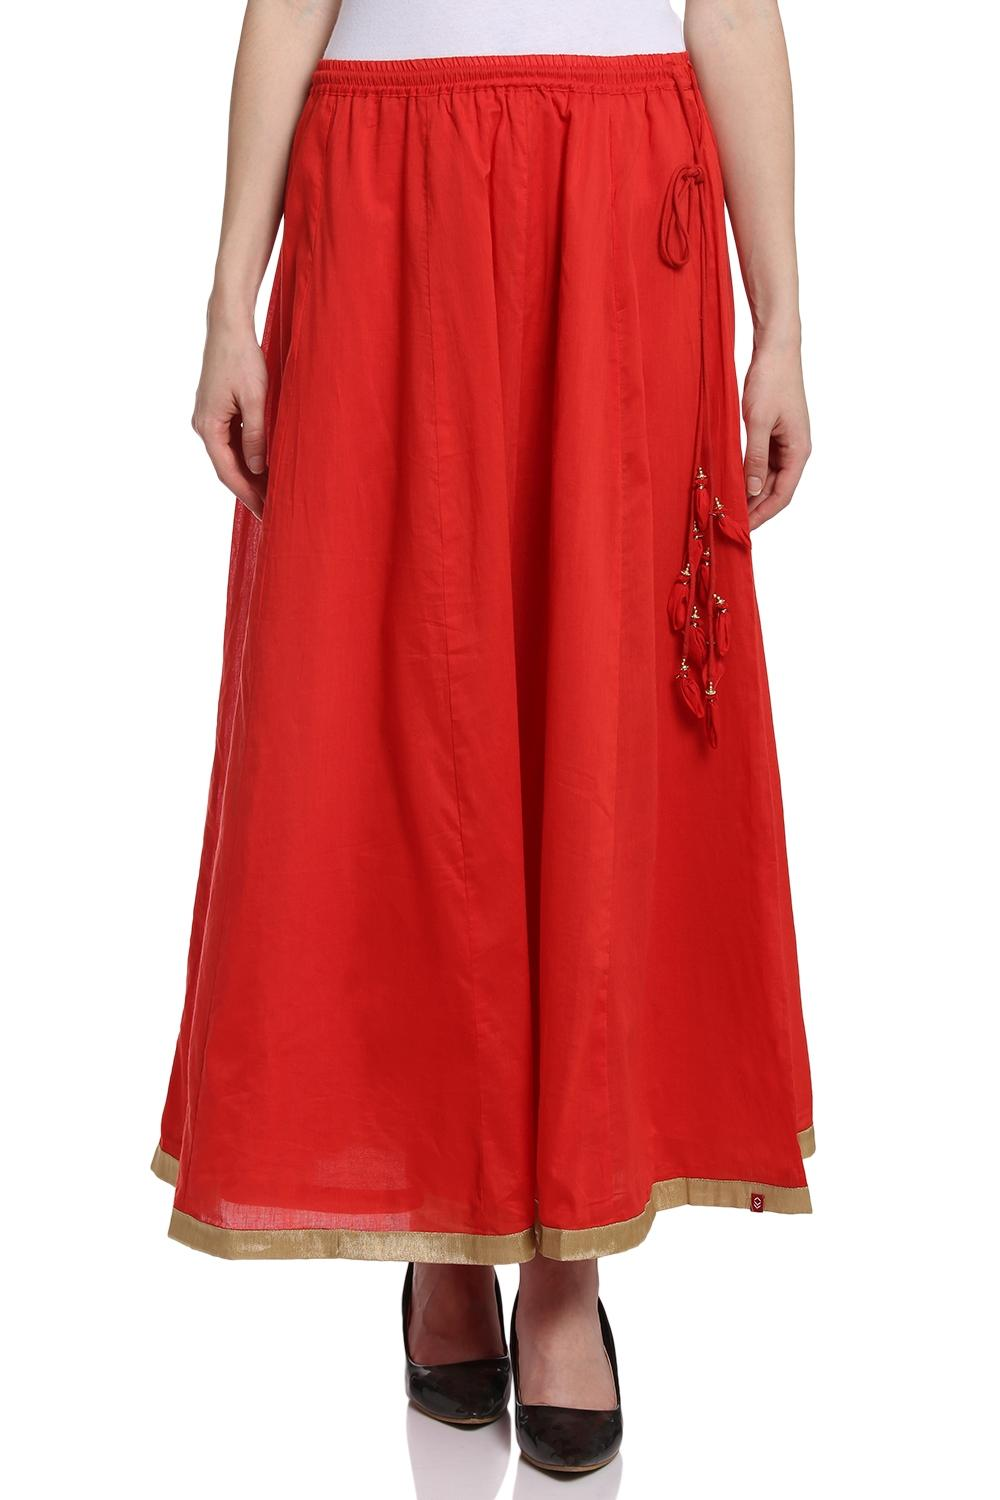 Red Flared Cotton Skirt - MNMCORE14556SS18RED